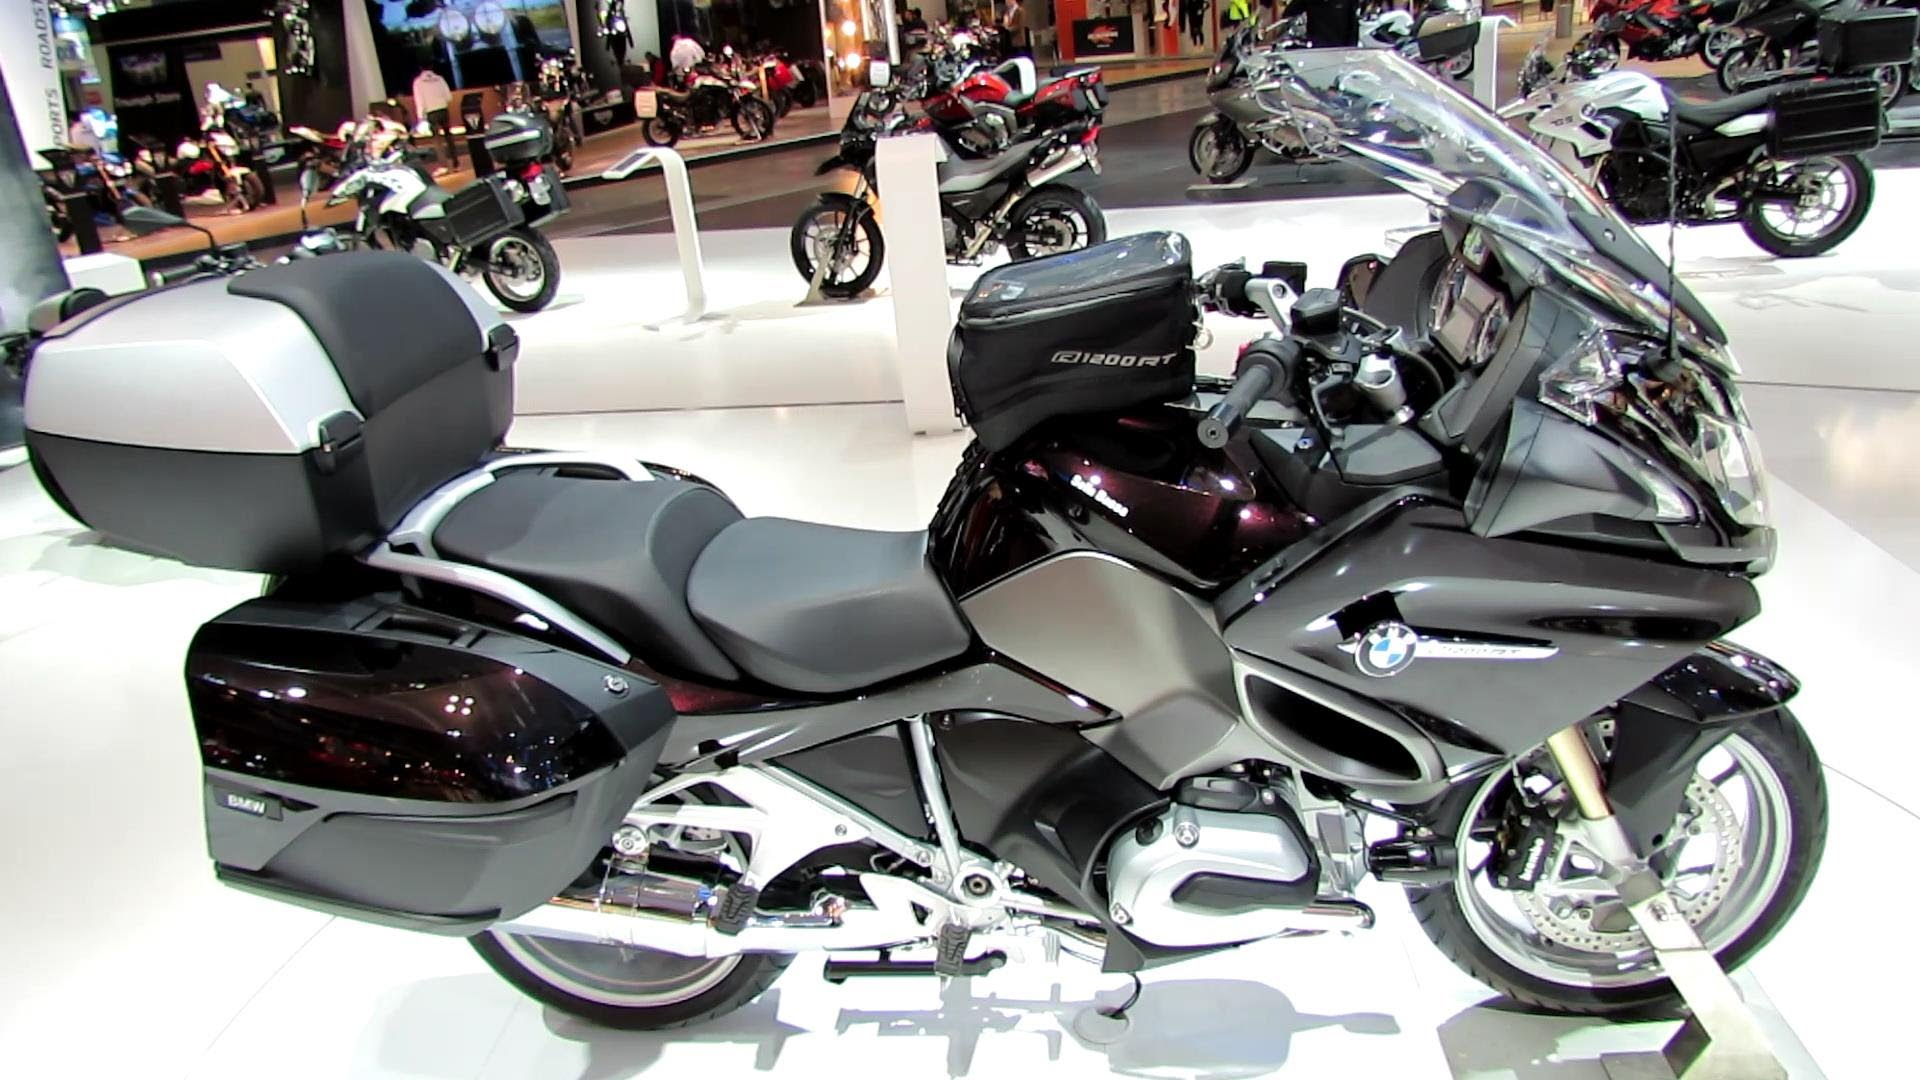 BMW R1200RT 2014 images #9054